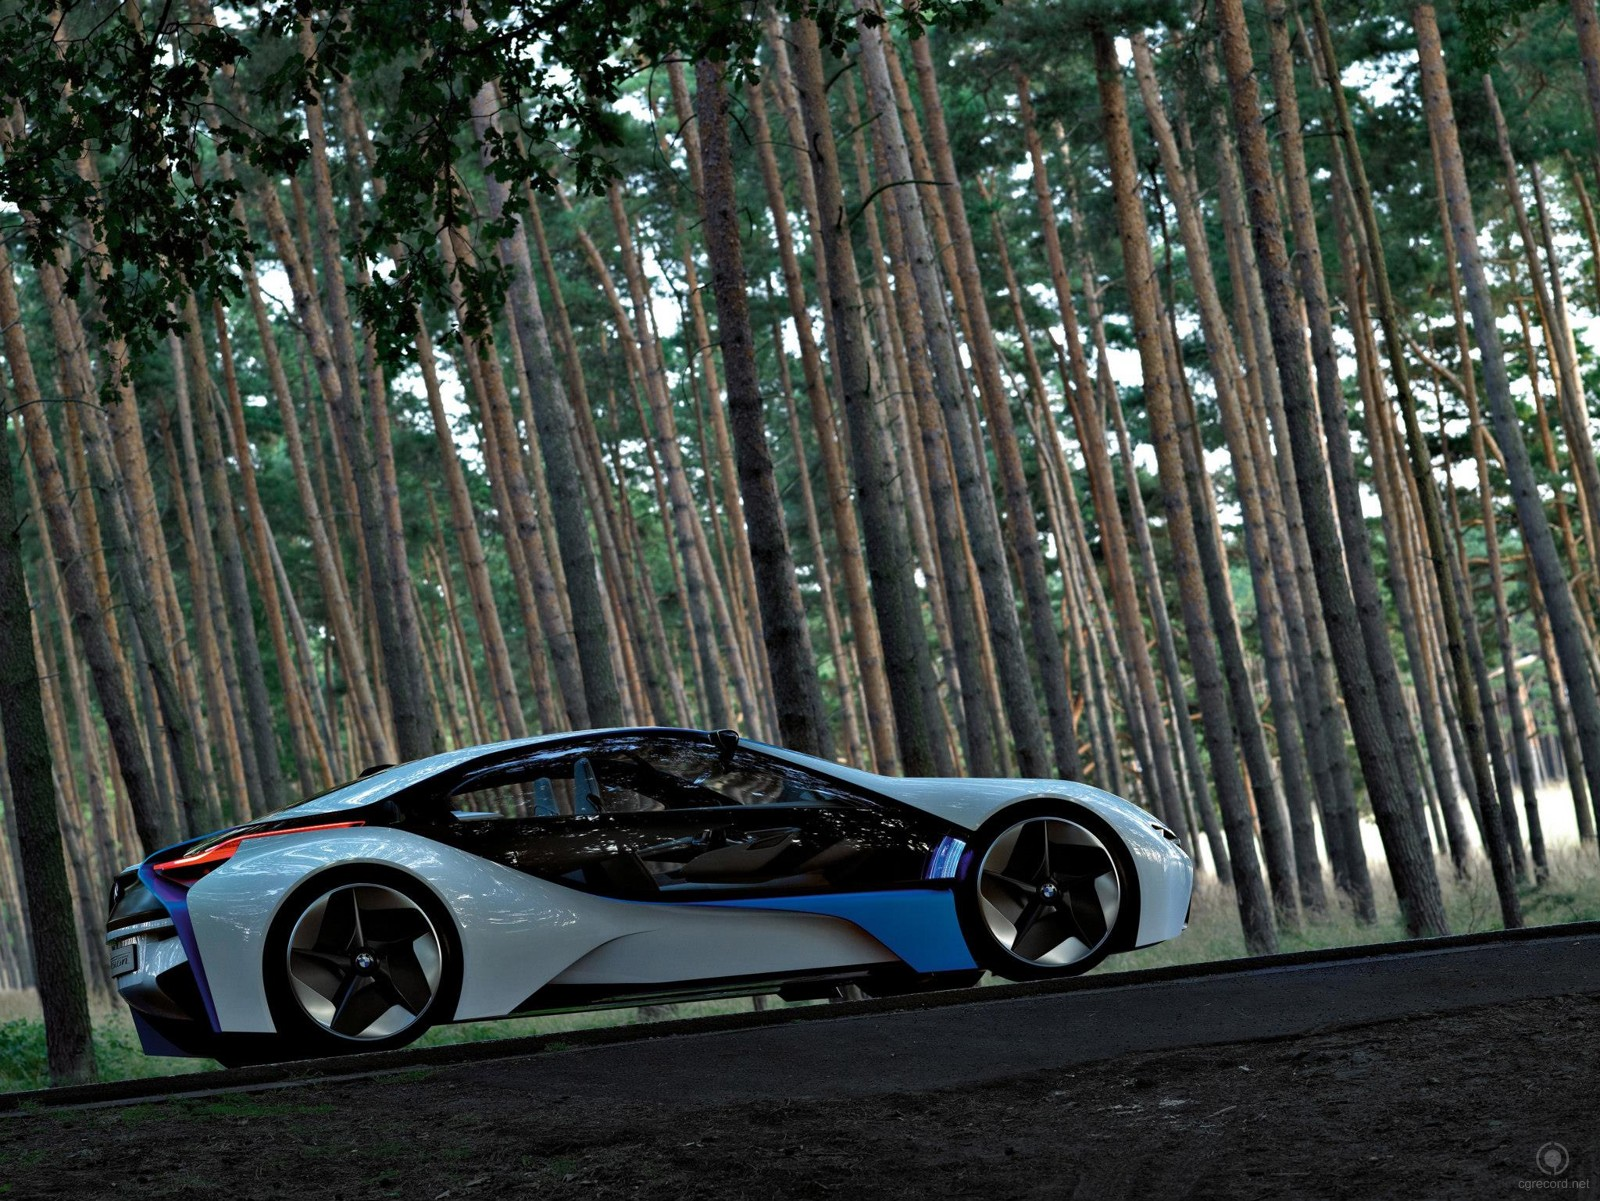 BMW Vision EfficientDynamicsi_cgrecord-net713